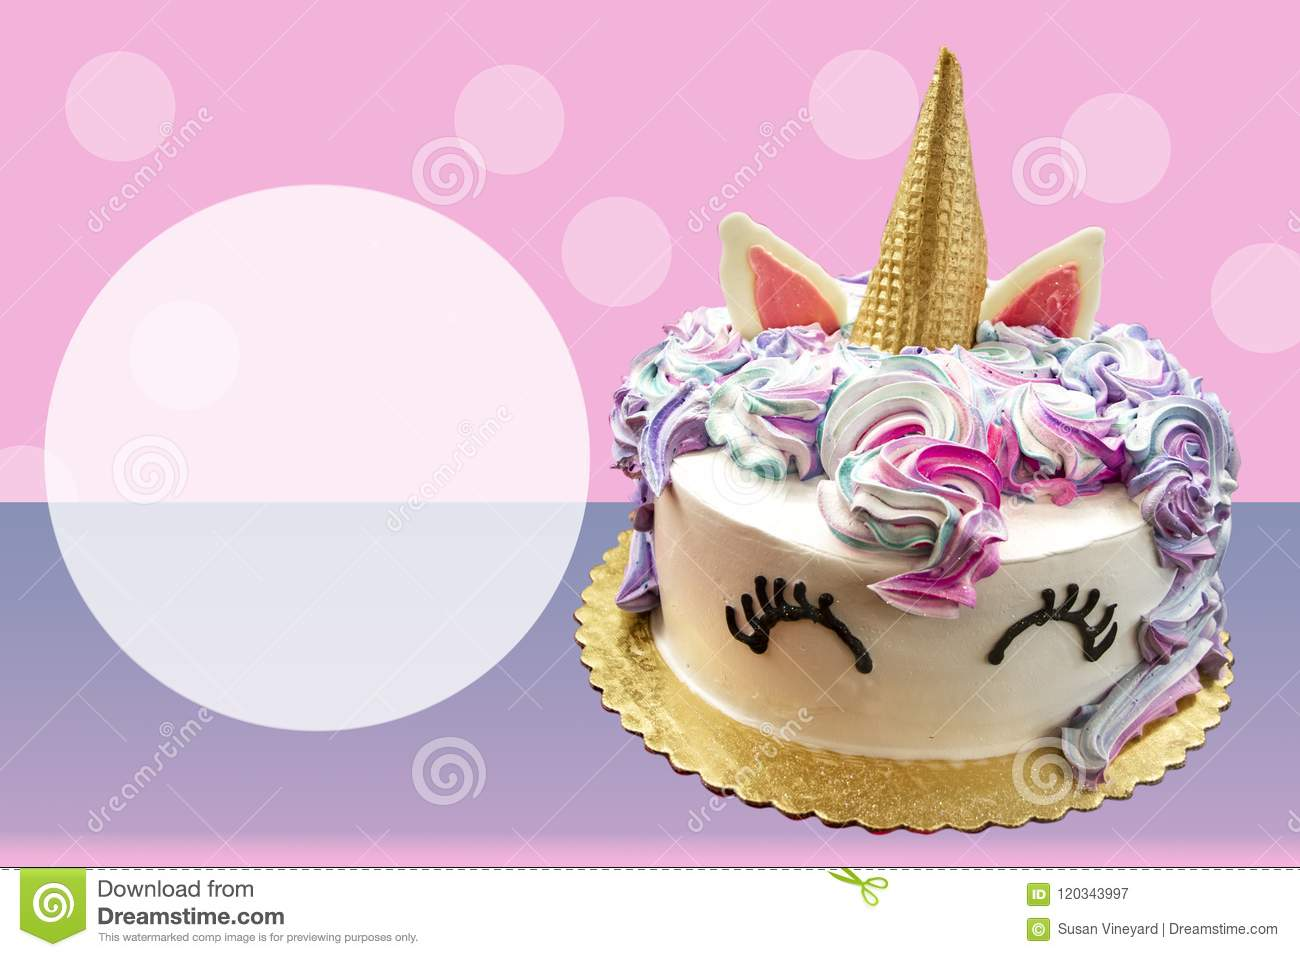 Adorable Unicorn Cake With Ice Cream Cone Horn On Pink And Purple Poka Dotted Background